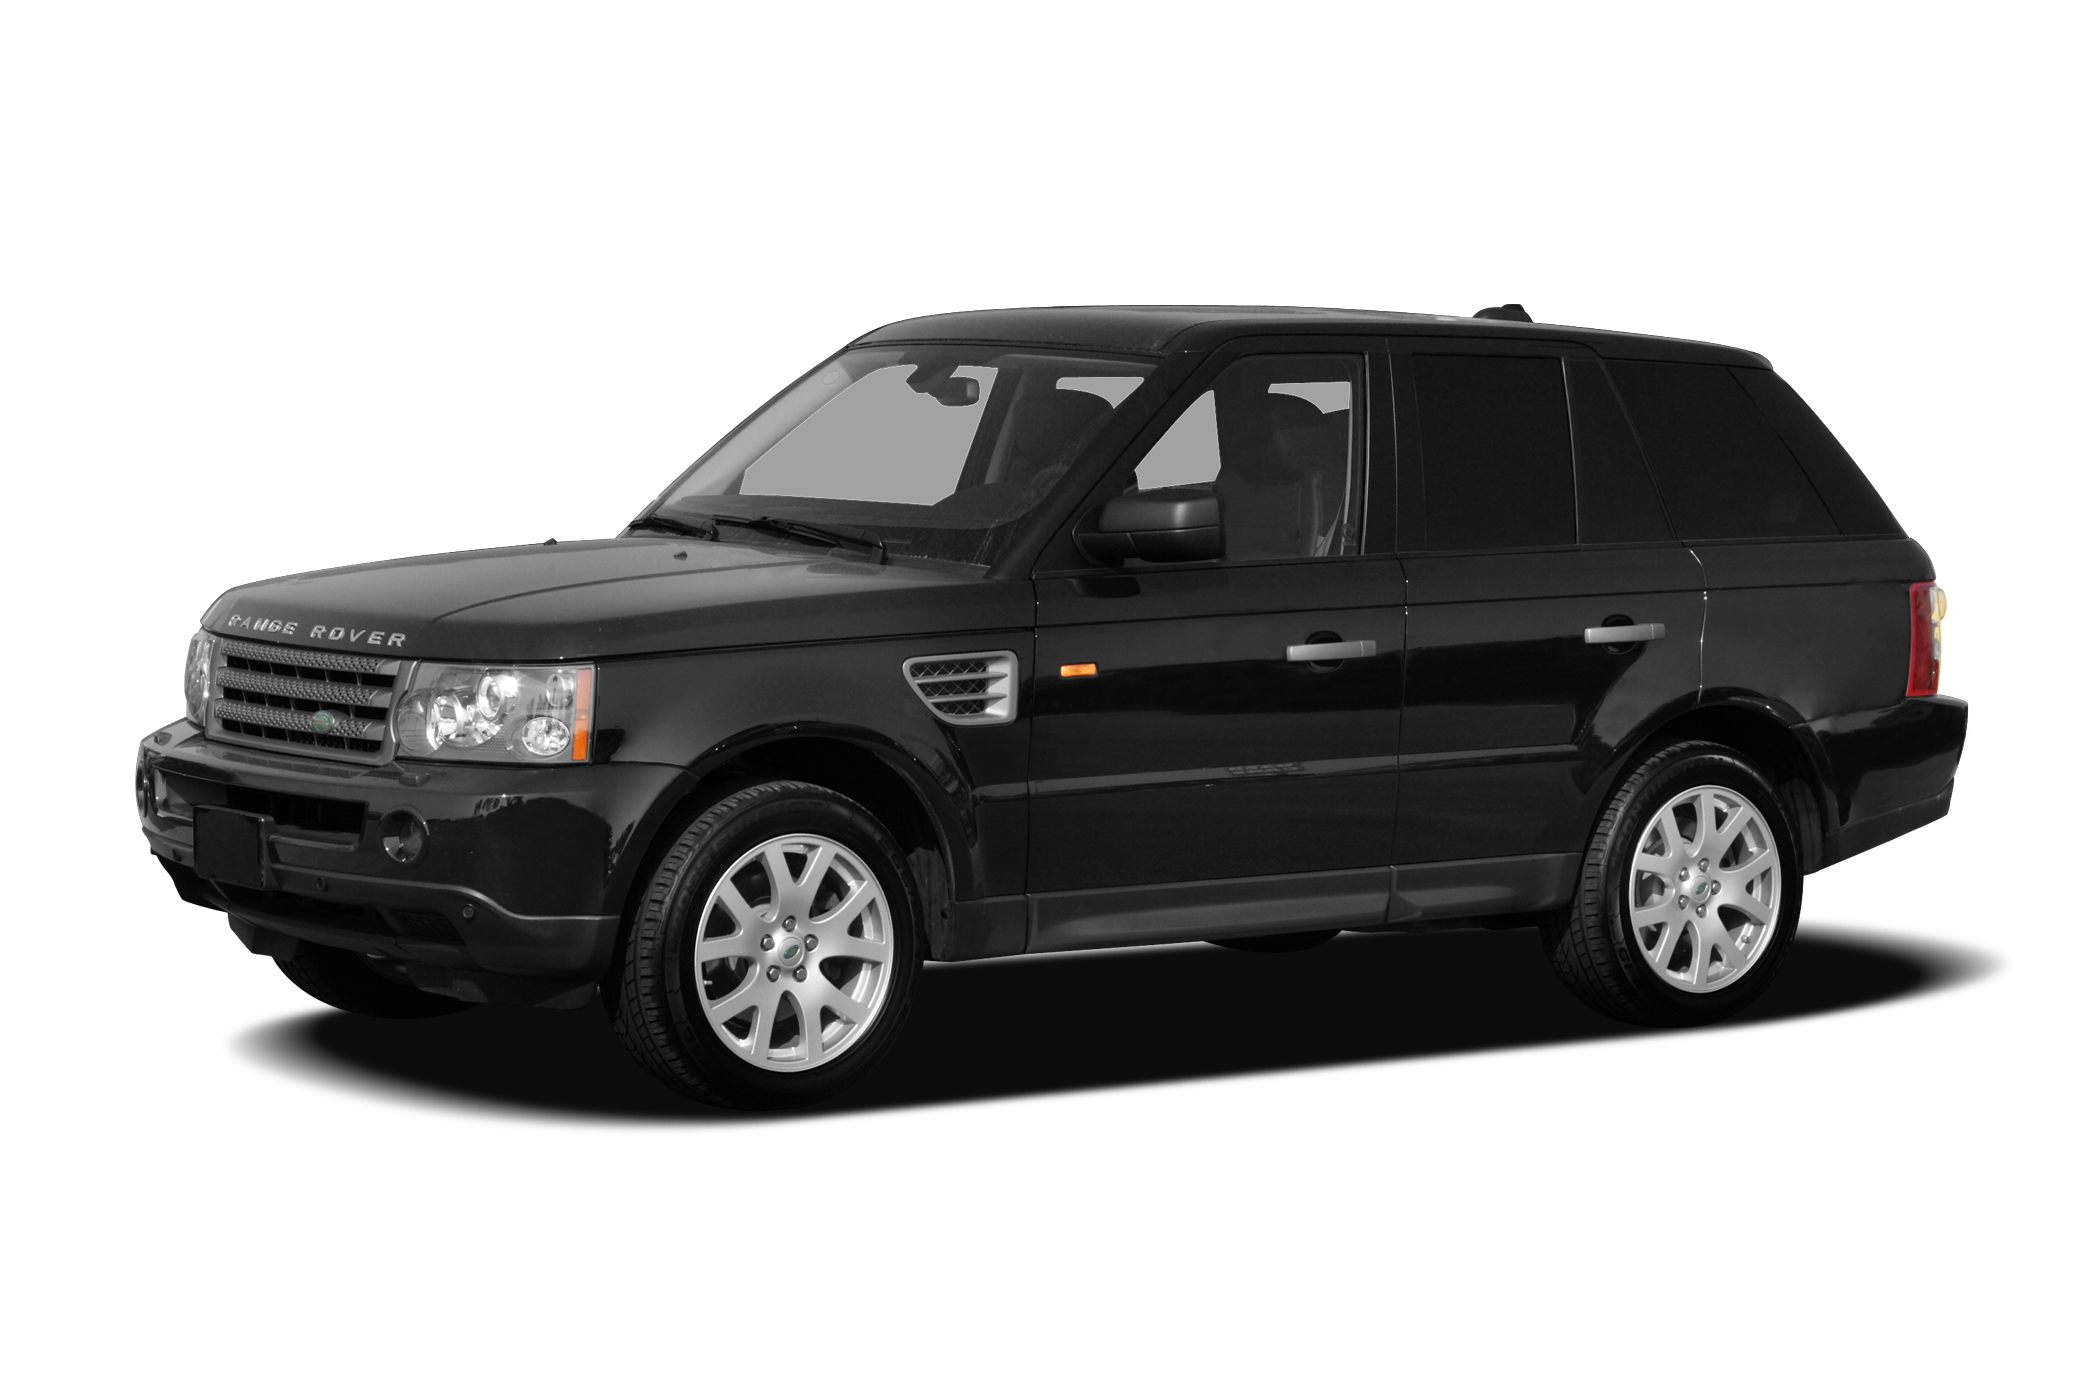 2007 Land Rover Range Rover Sport HSE HSE clean NON-SMOKER very well kept vehicle Loaded with LEAT